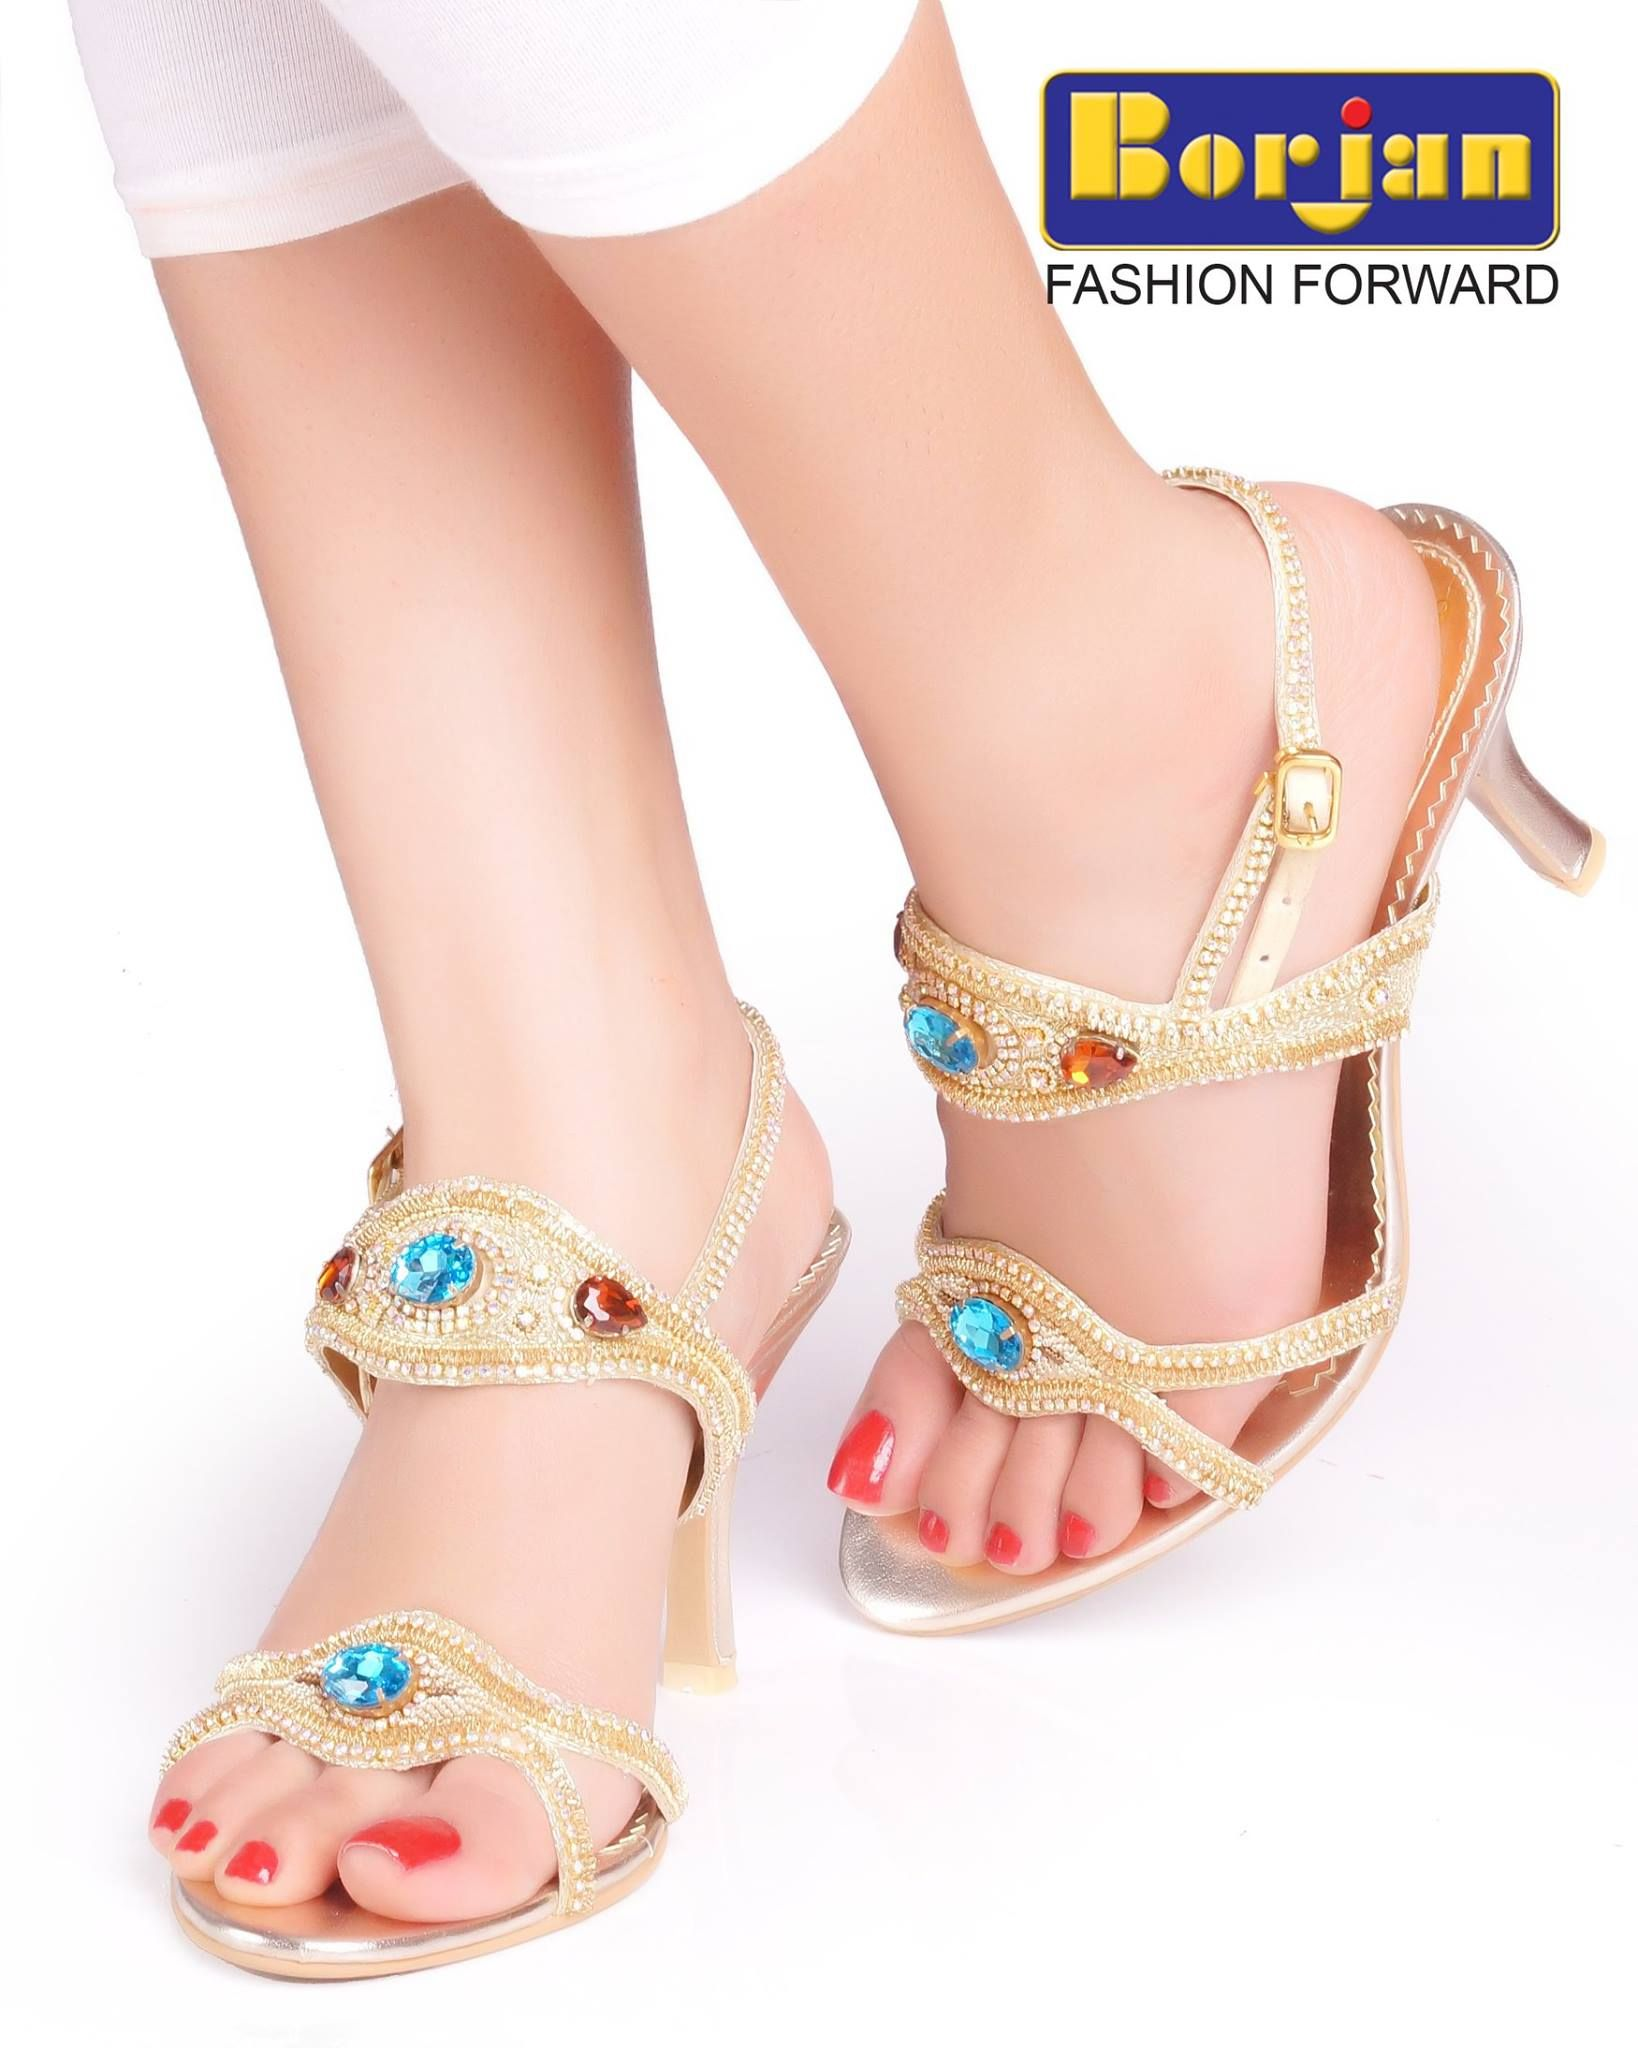 952413e621d649 Latest Borjan New Styles Shoes 2016. Borjan-Female-Sandals   Hot and  elegant Sandals for this Summer Article   A13169115 Price   2700